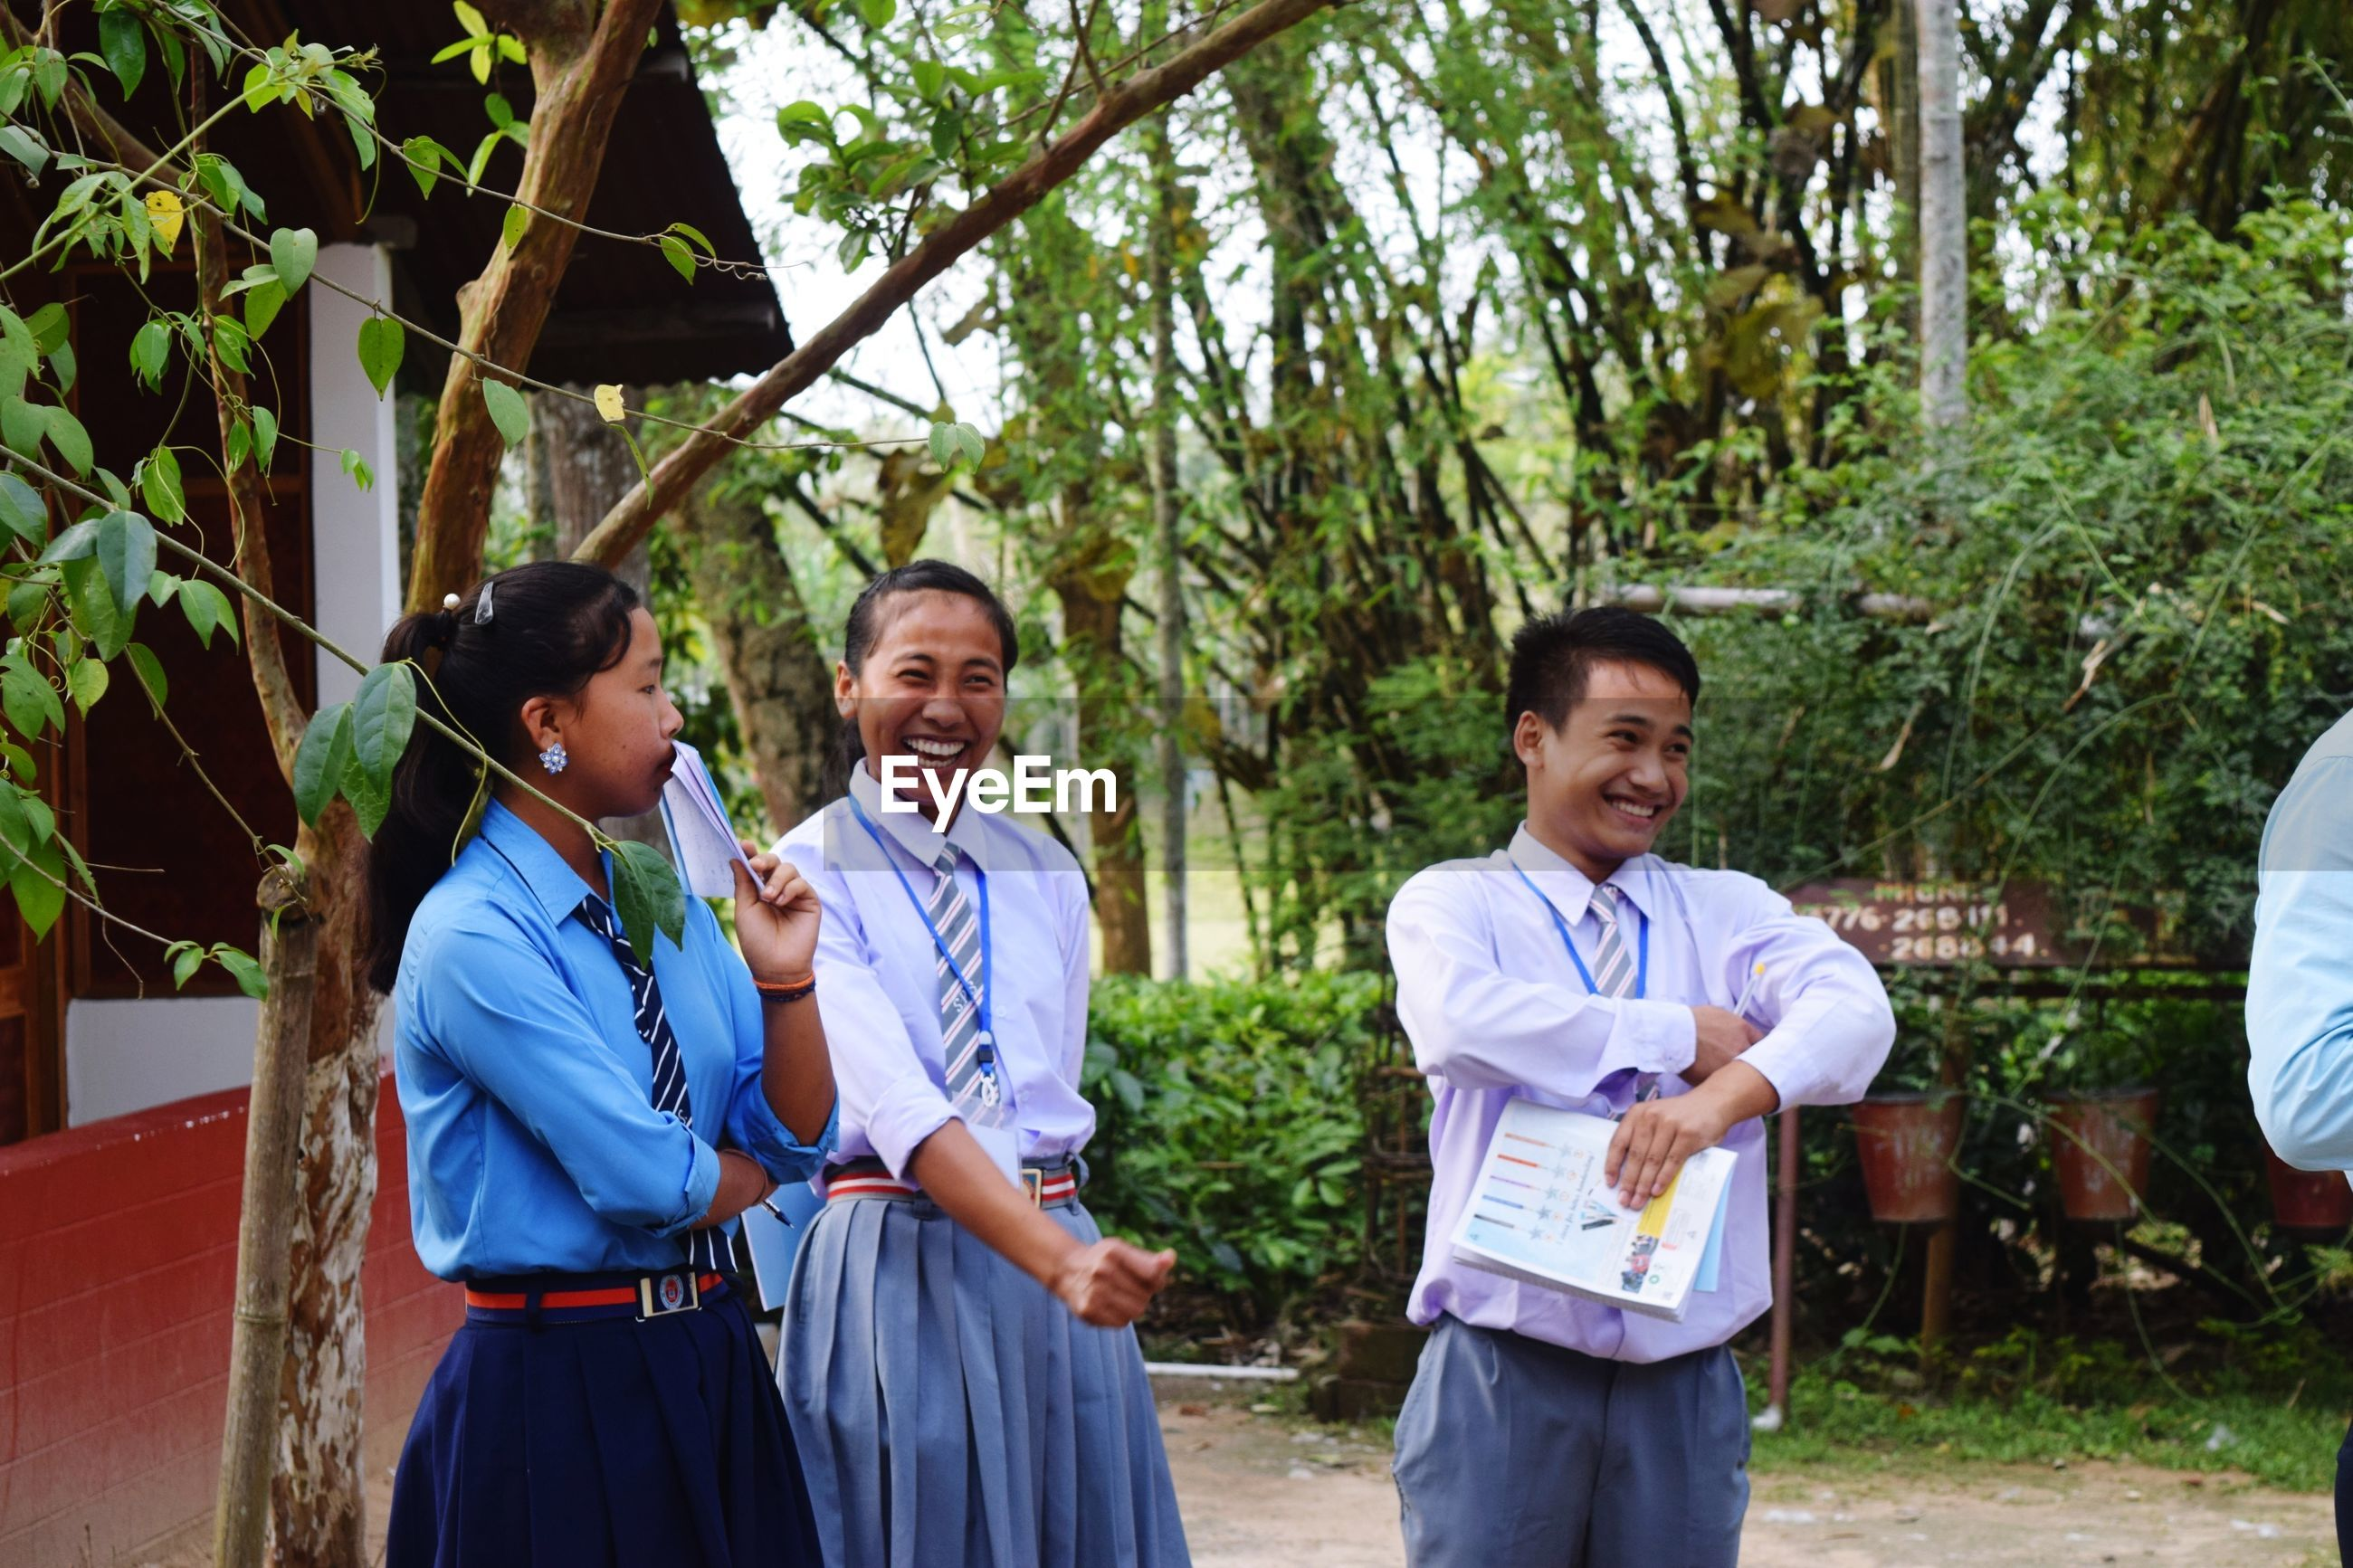 Students smiling while standing against trees